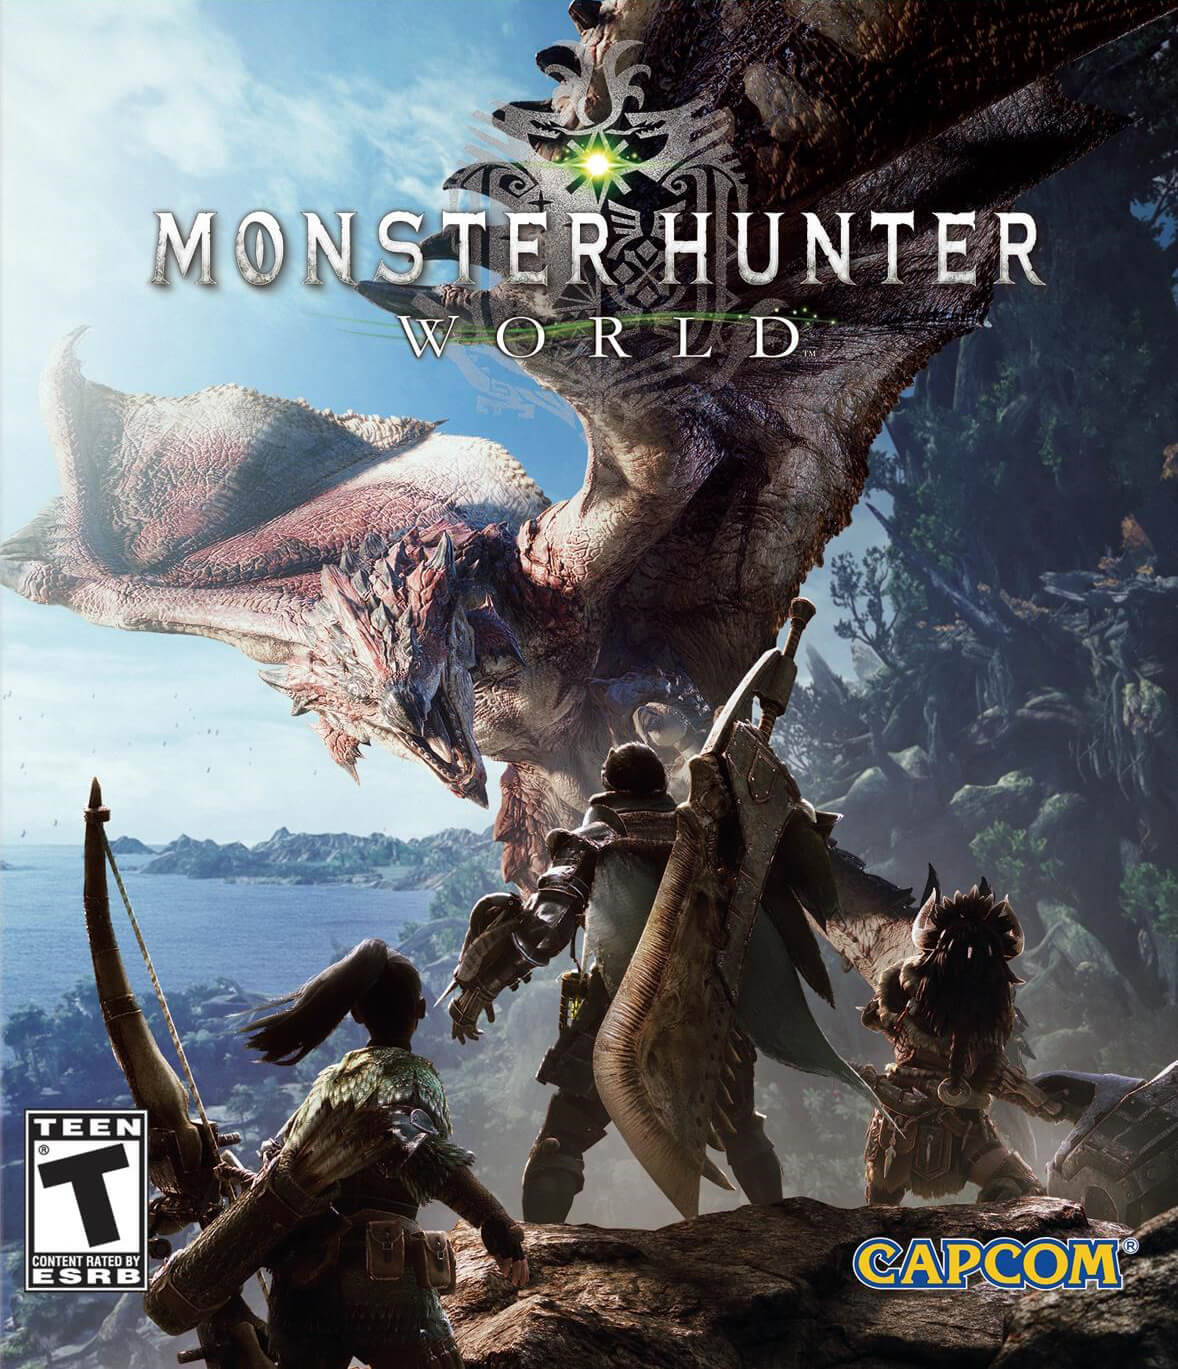 https://img5.downloadha.com/hosein/files/2018/12/Monster-Hunter-World-pc-cover-large.jpg